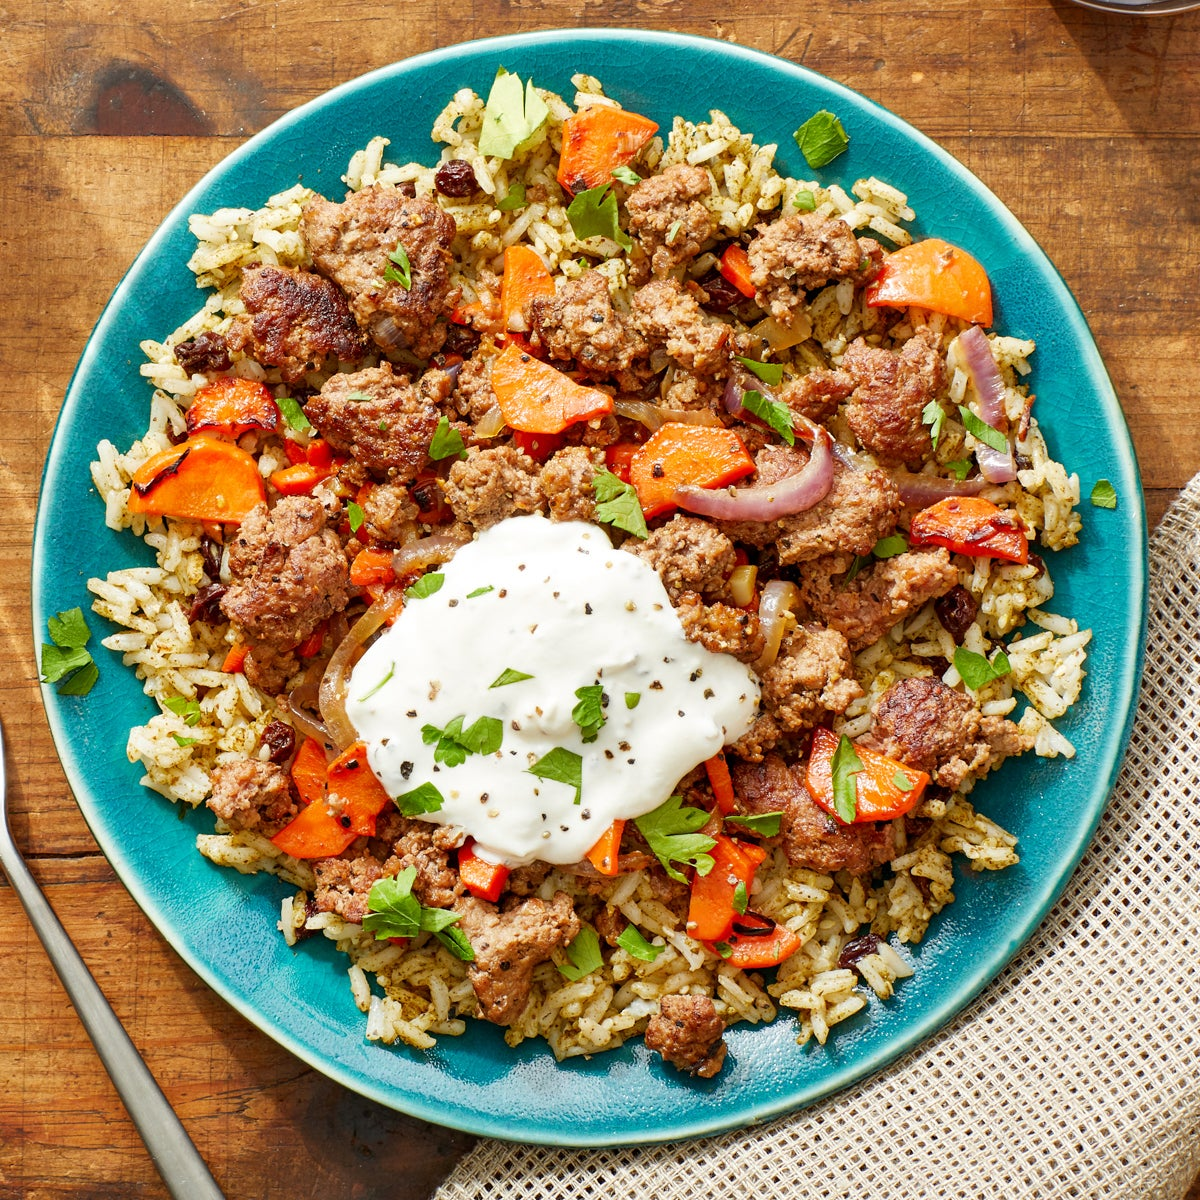 Beef over Za'atar-Spiced Rice with Lemon Labneh